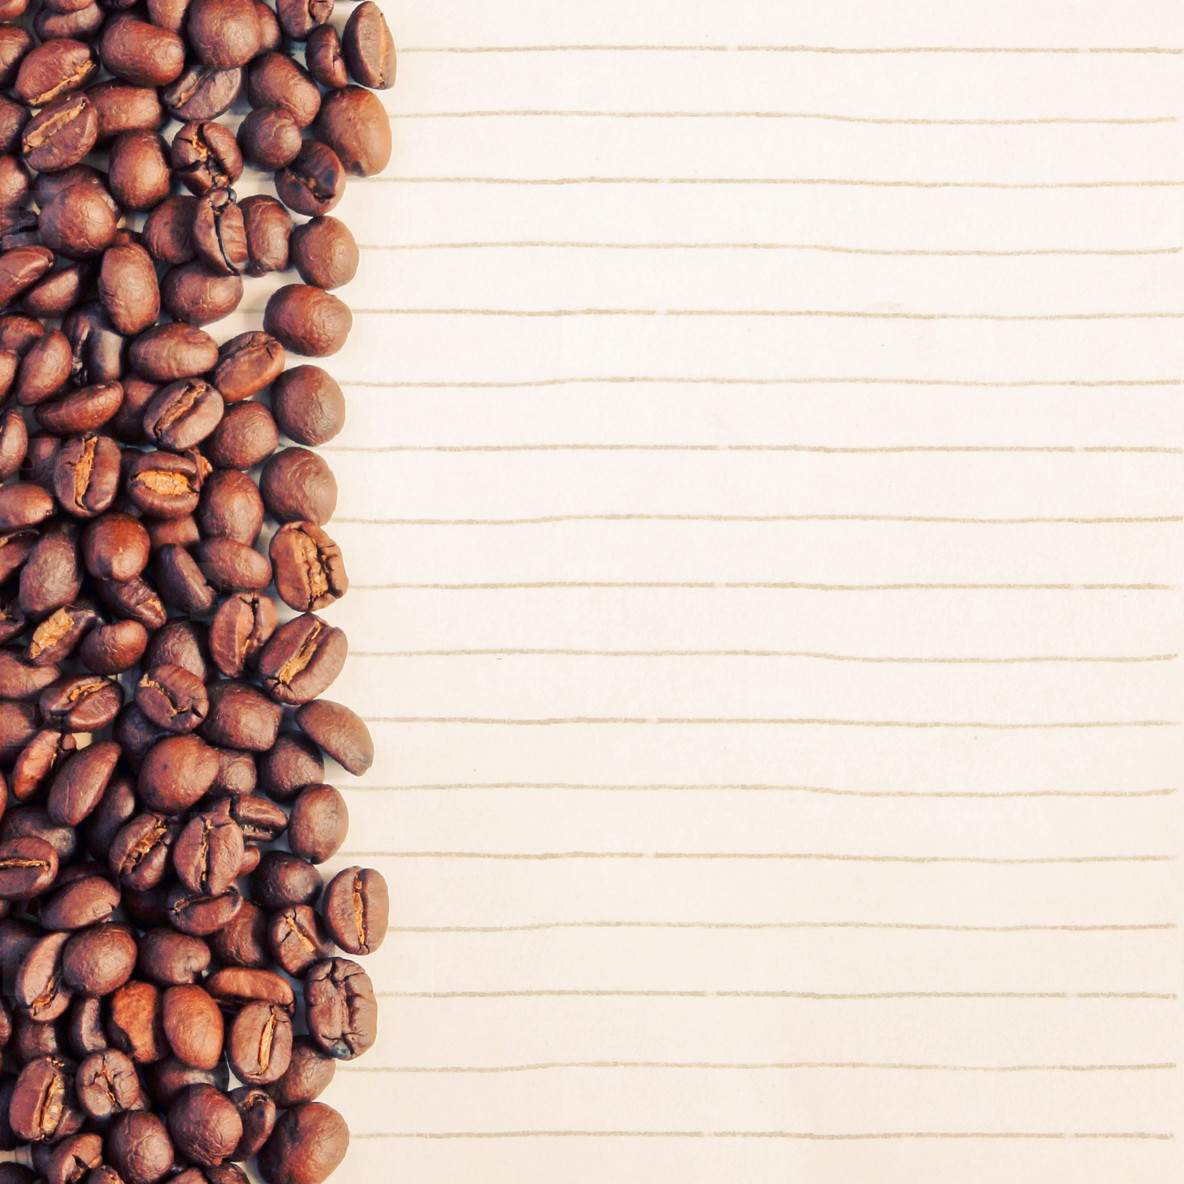 Coffee beans and paper